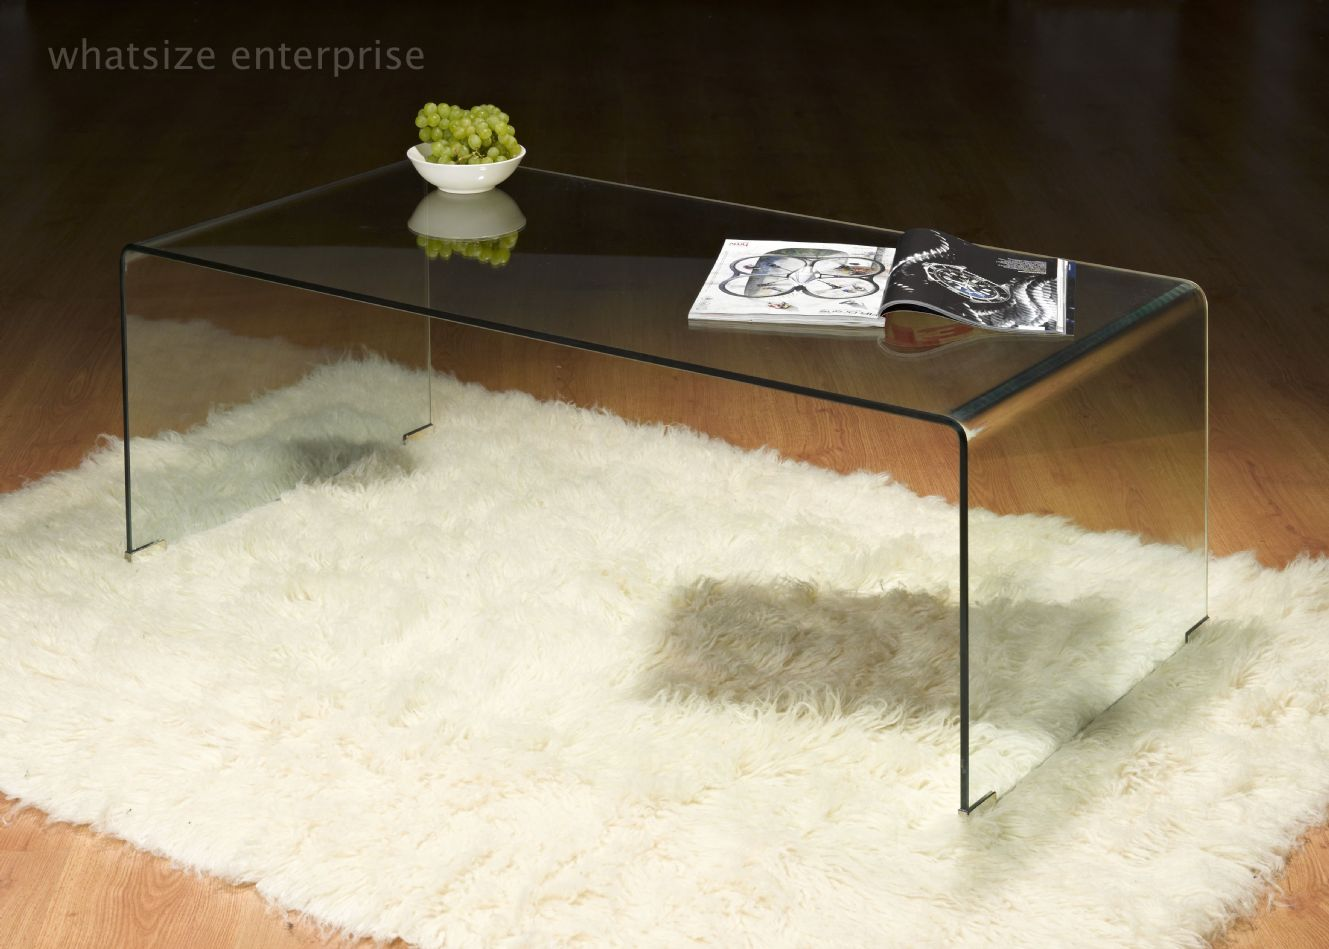 Bent Glass Coffee Table Incredible Glass Top Table Designs For You To Enjoy Your Coffee Contemporary Decor On Table Design Ideas (Image 5 of 9)